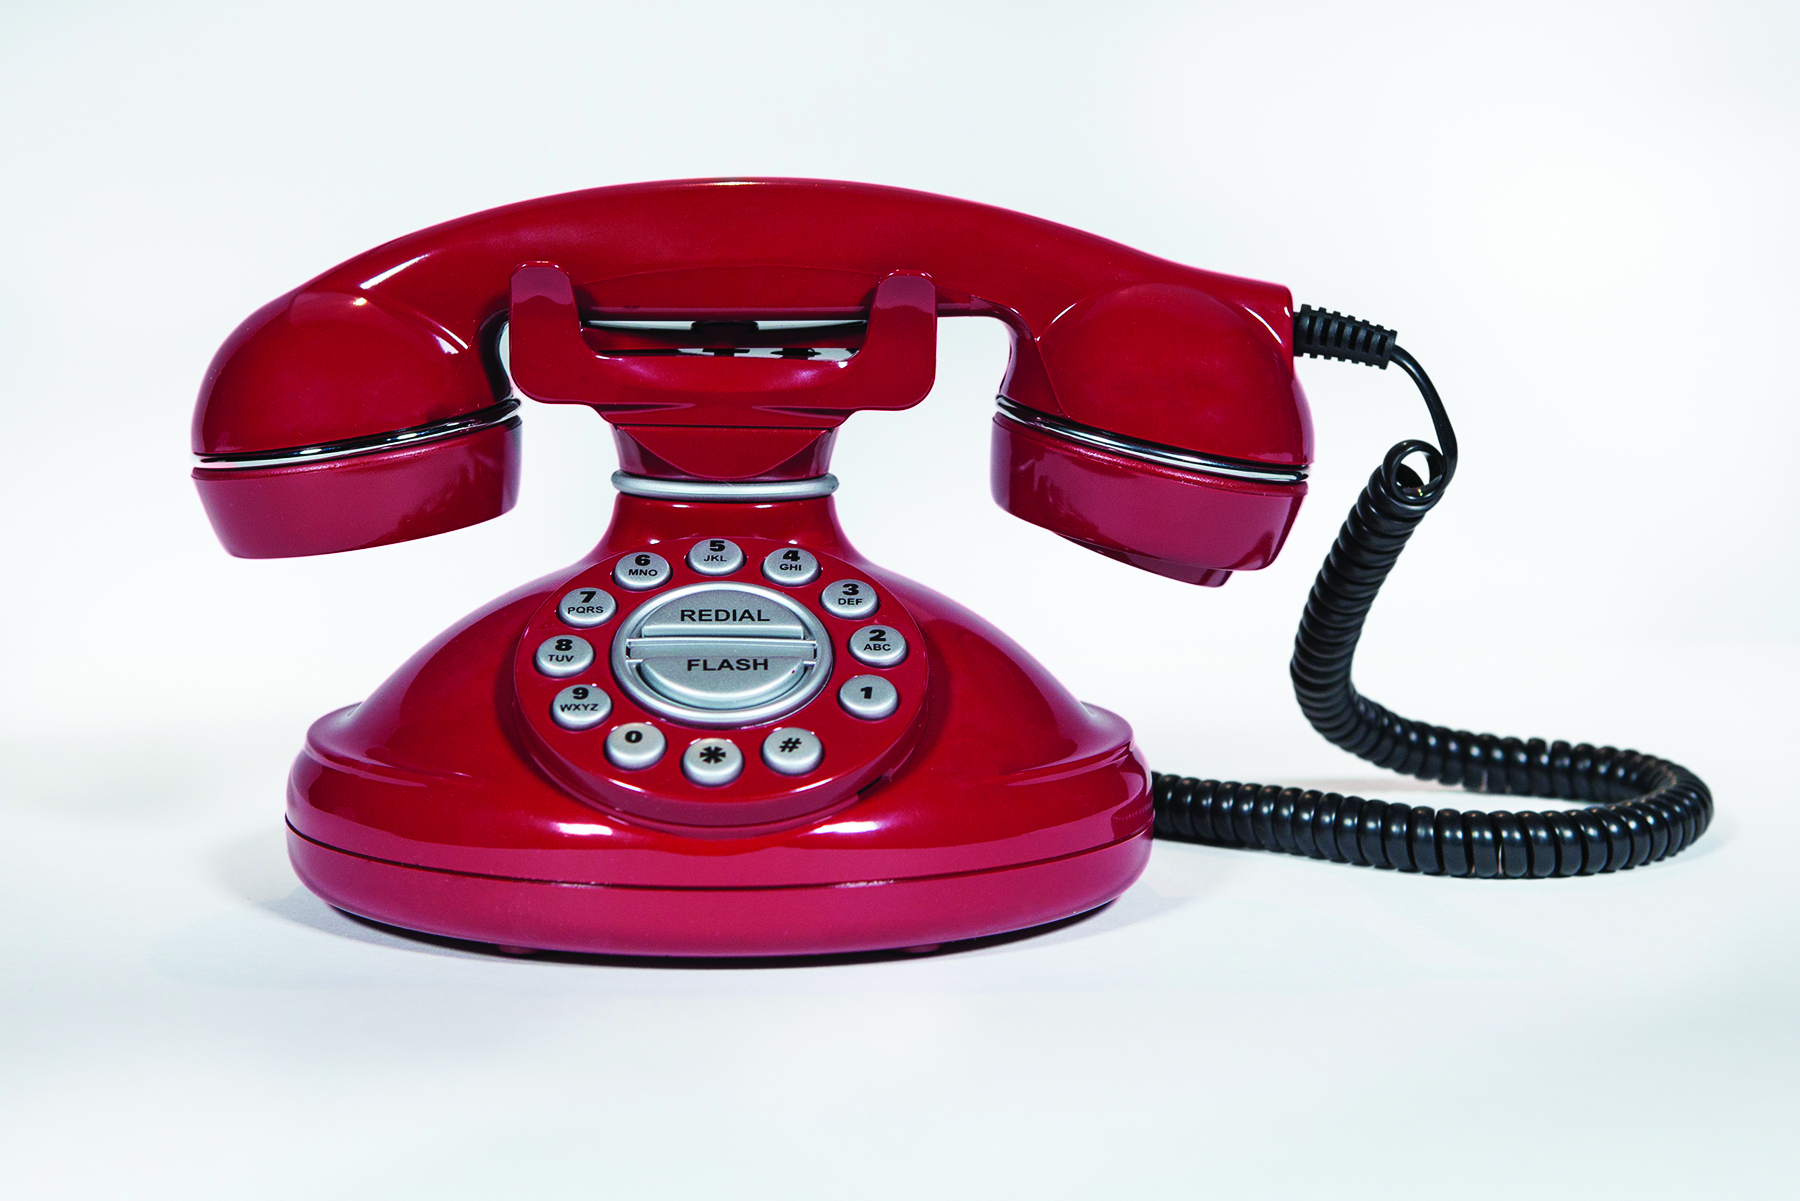 retro table top phone 2013 holiday gift guide indiana. Black Bedroom Furniture Sets. Home Design Ideas